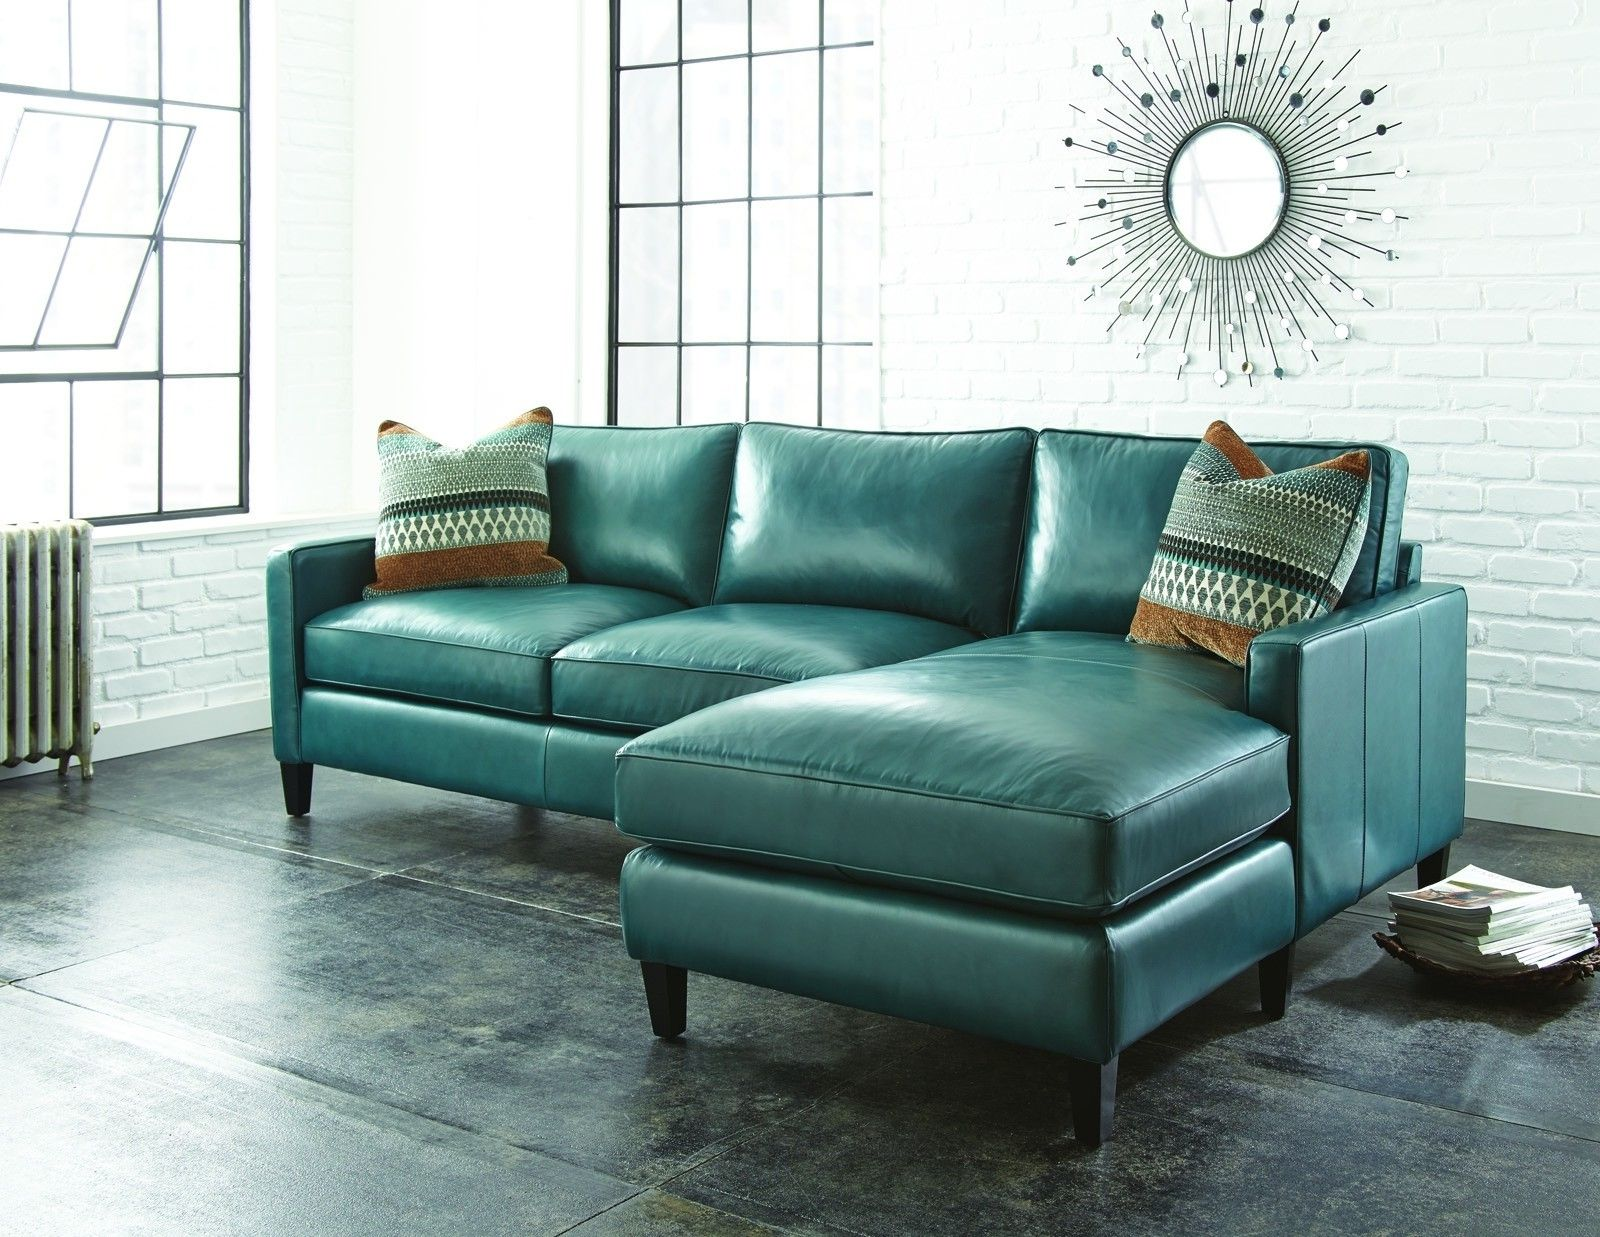 Teal leather sectional sofa white is the most elegant of all colors this color creates a delightful setting these sectional sofas constantly look very